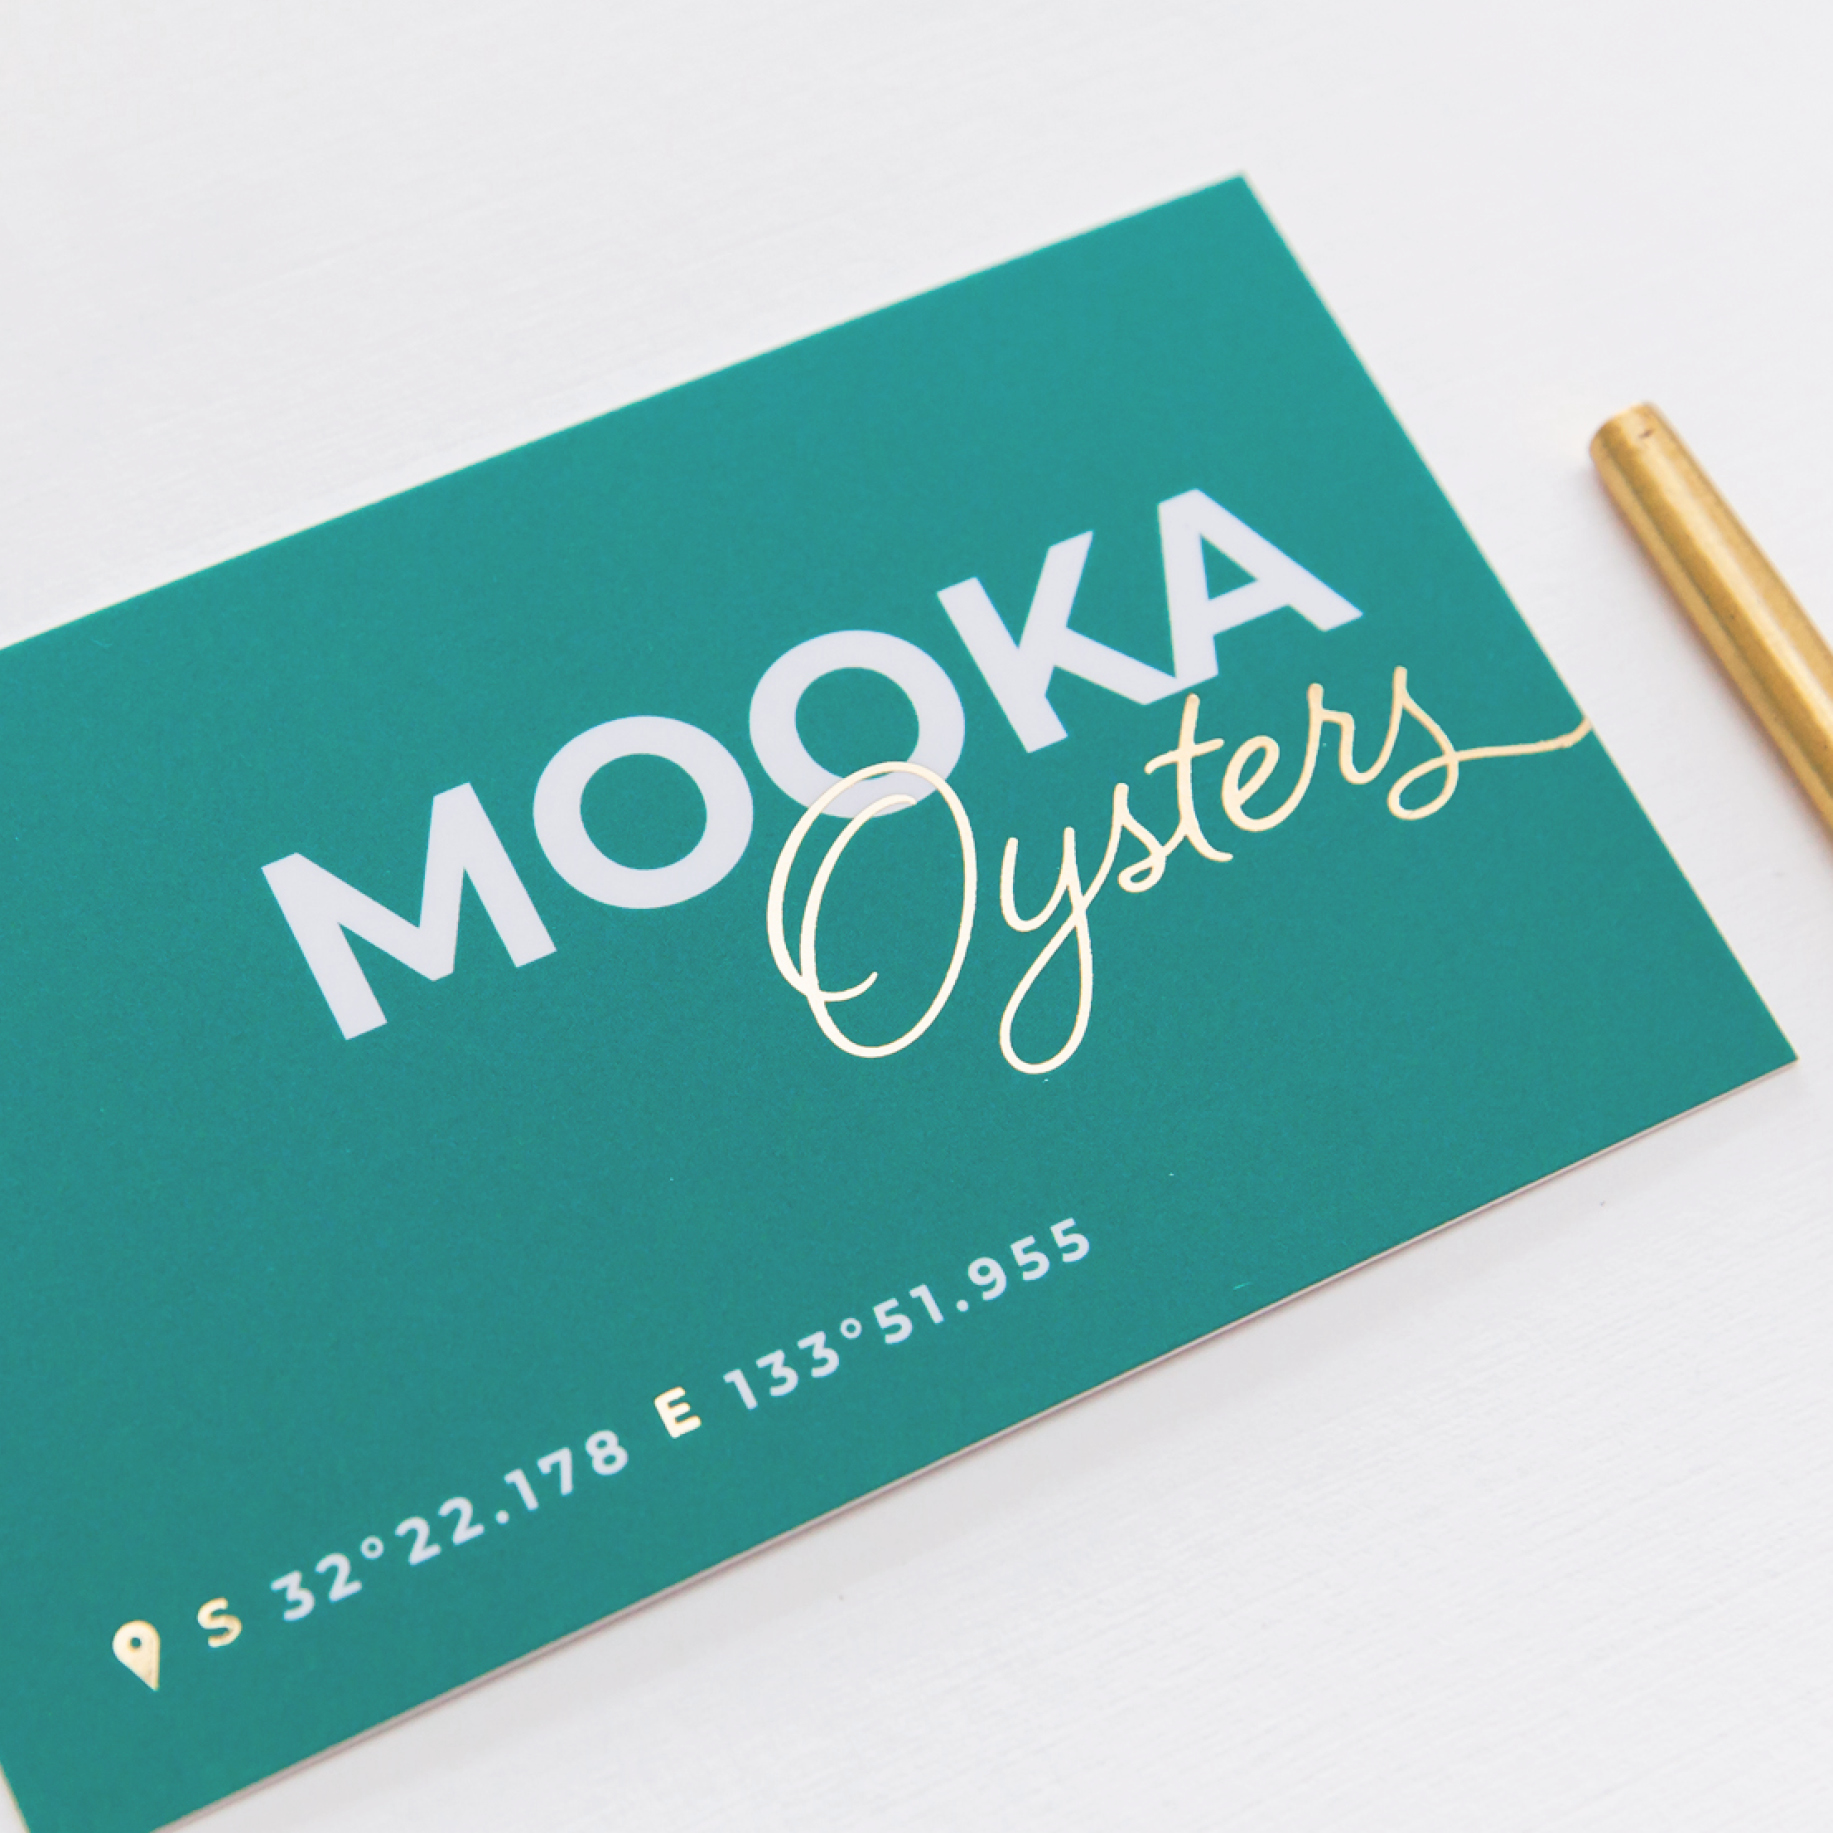 Mooka Oysters Business Card